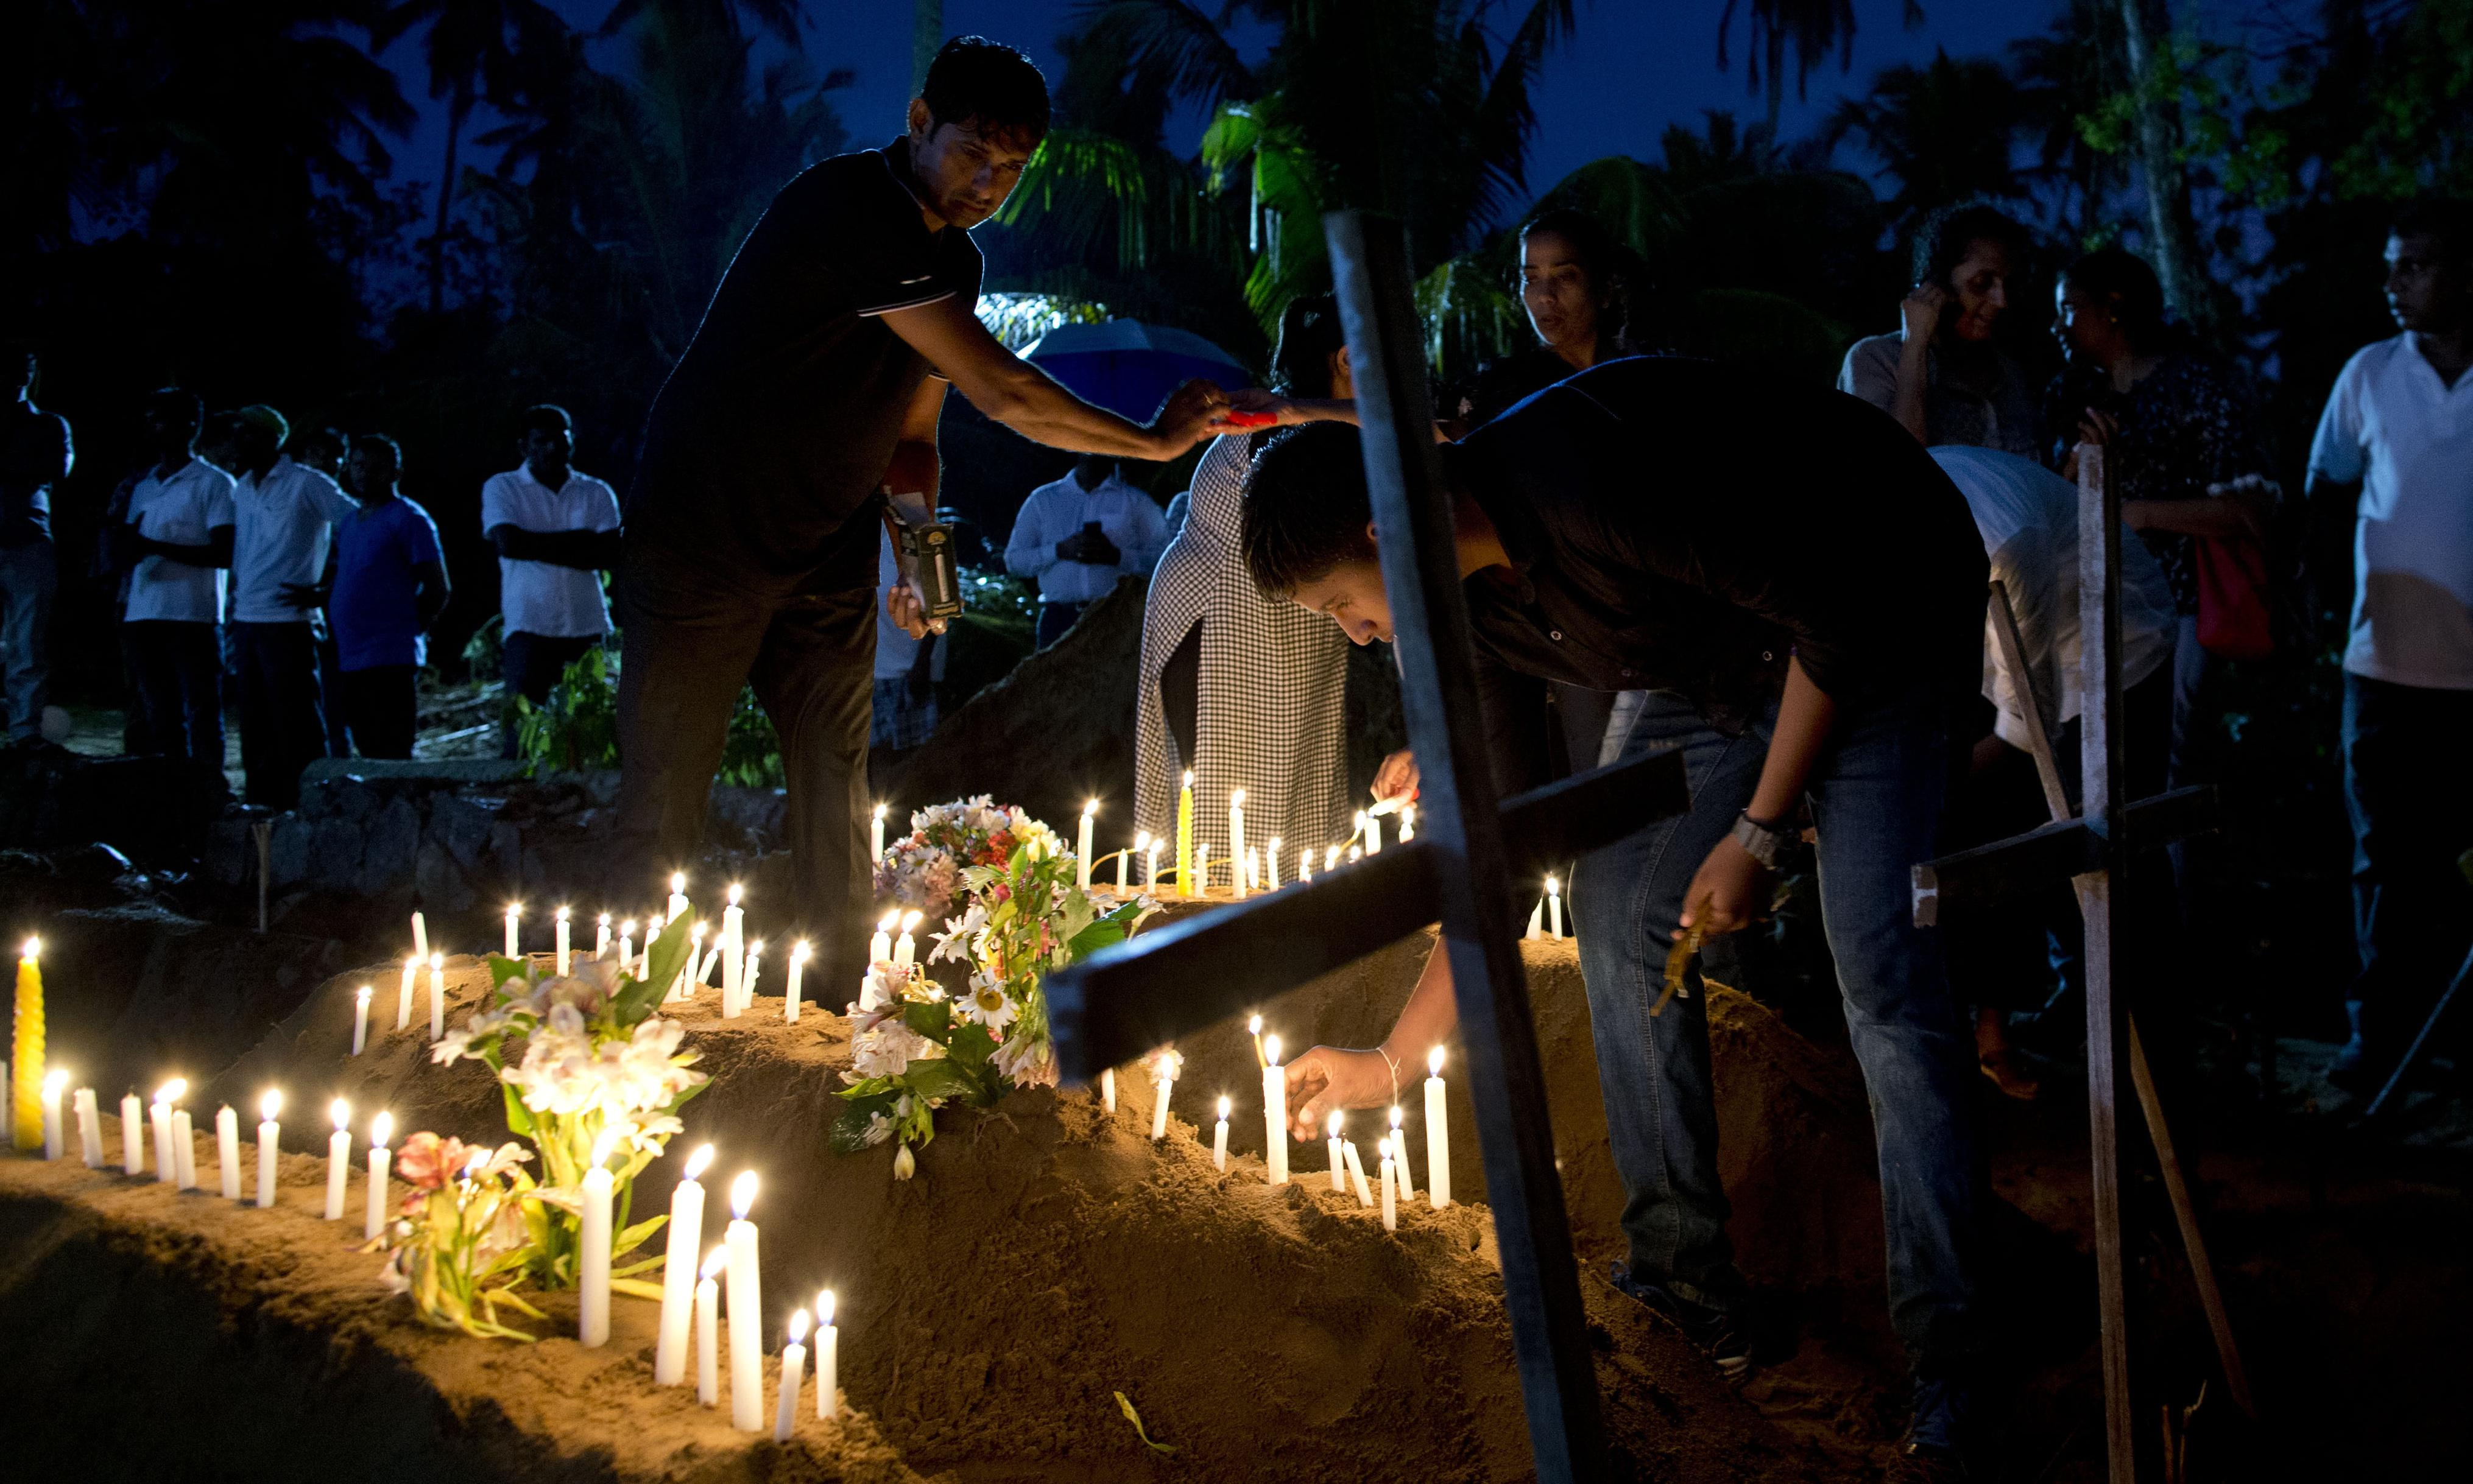 'So many lives in one day': Sri Lankans mourn after Easter carnage